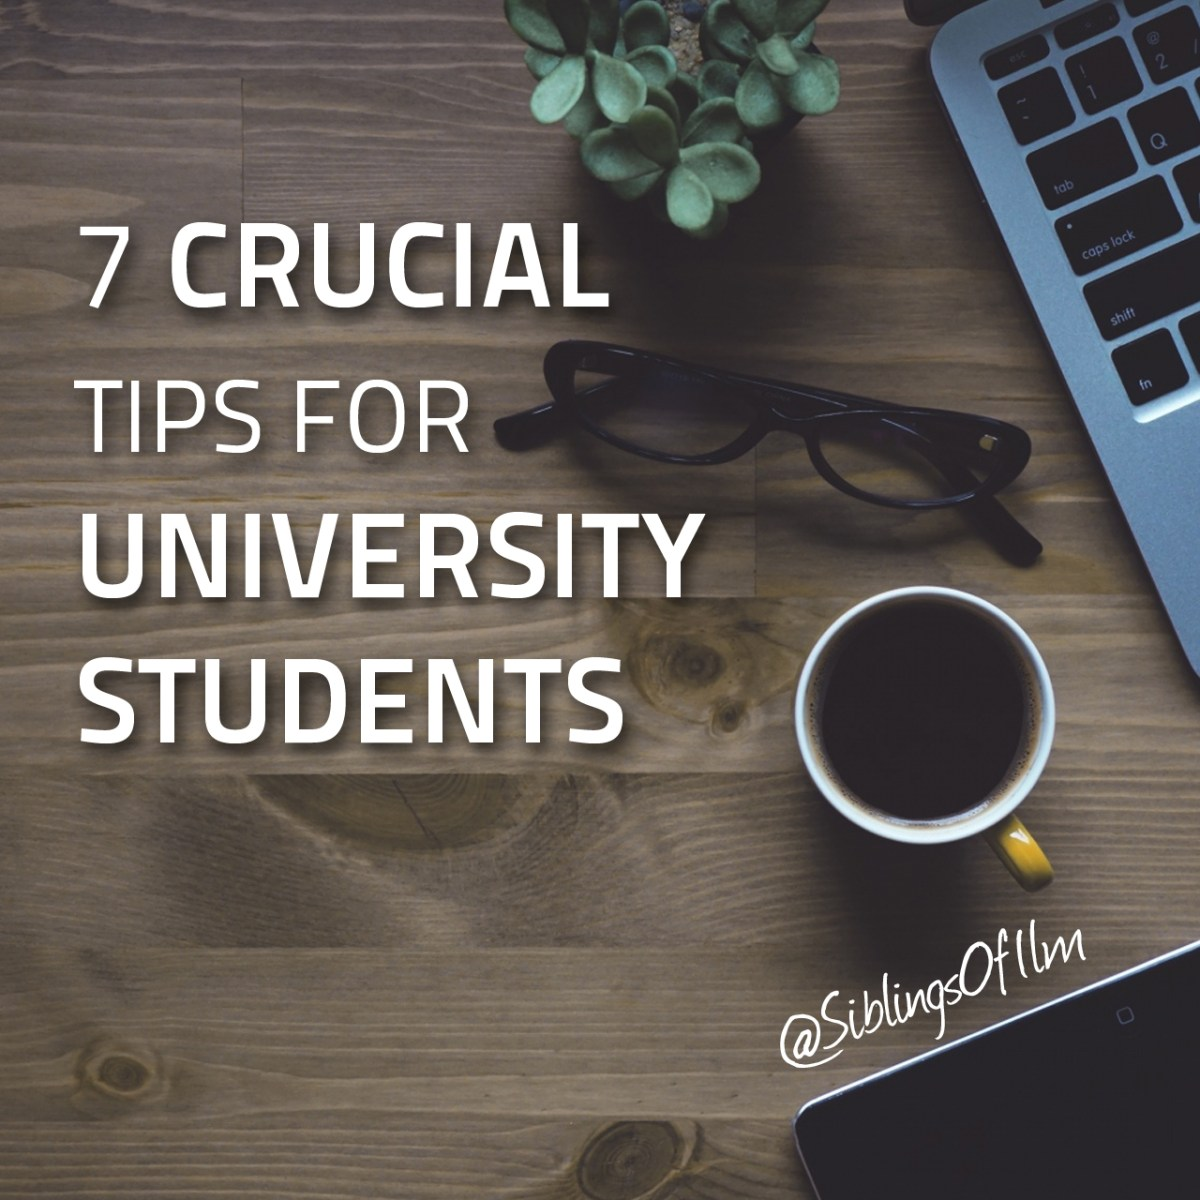 7 Crucial Tips For University Students